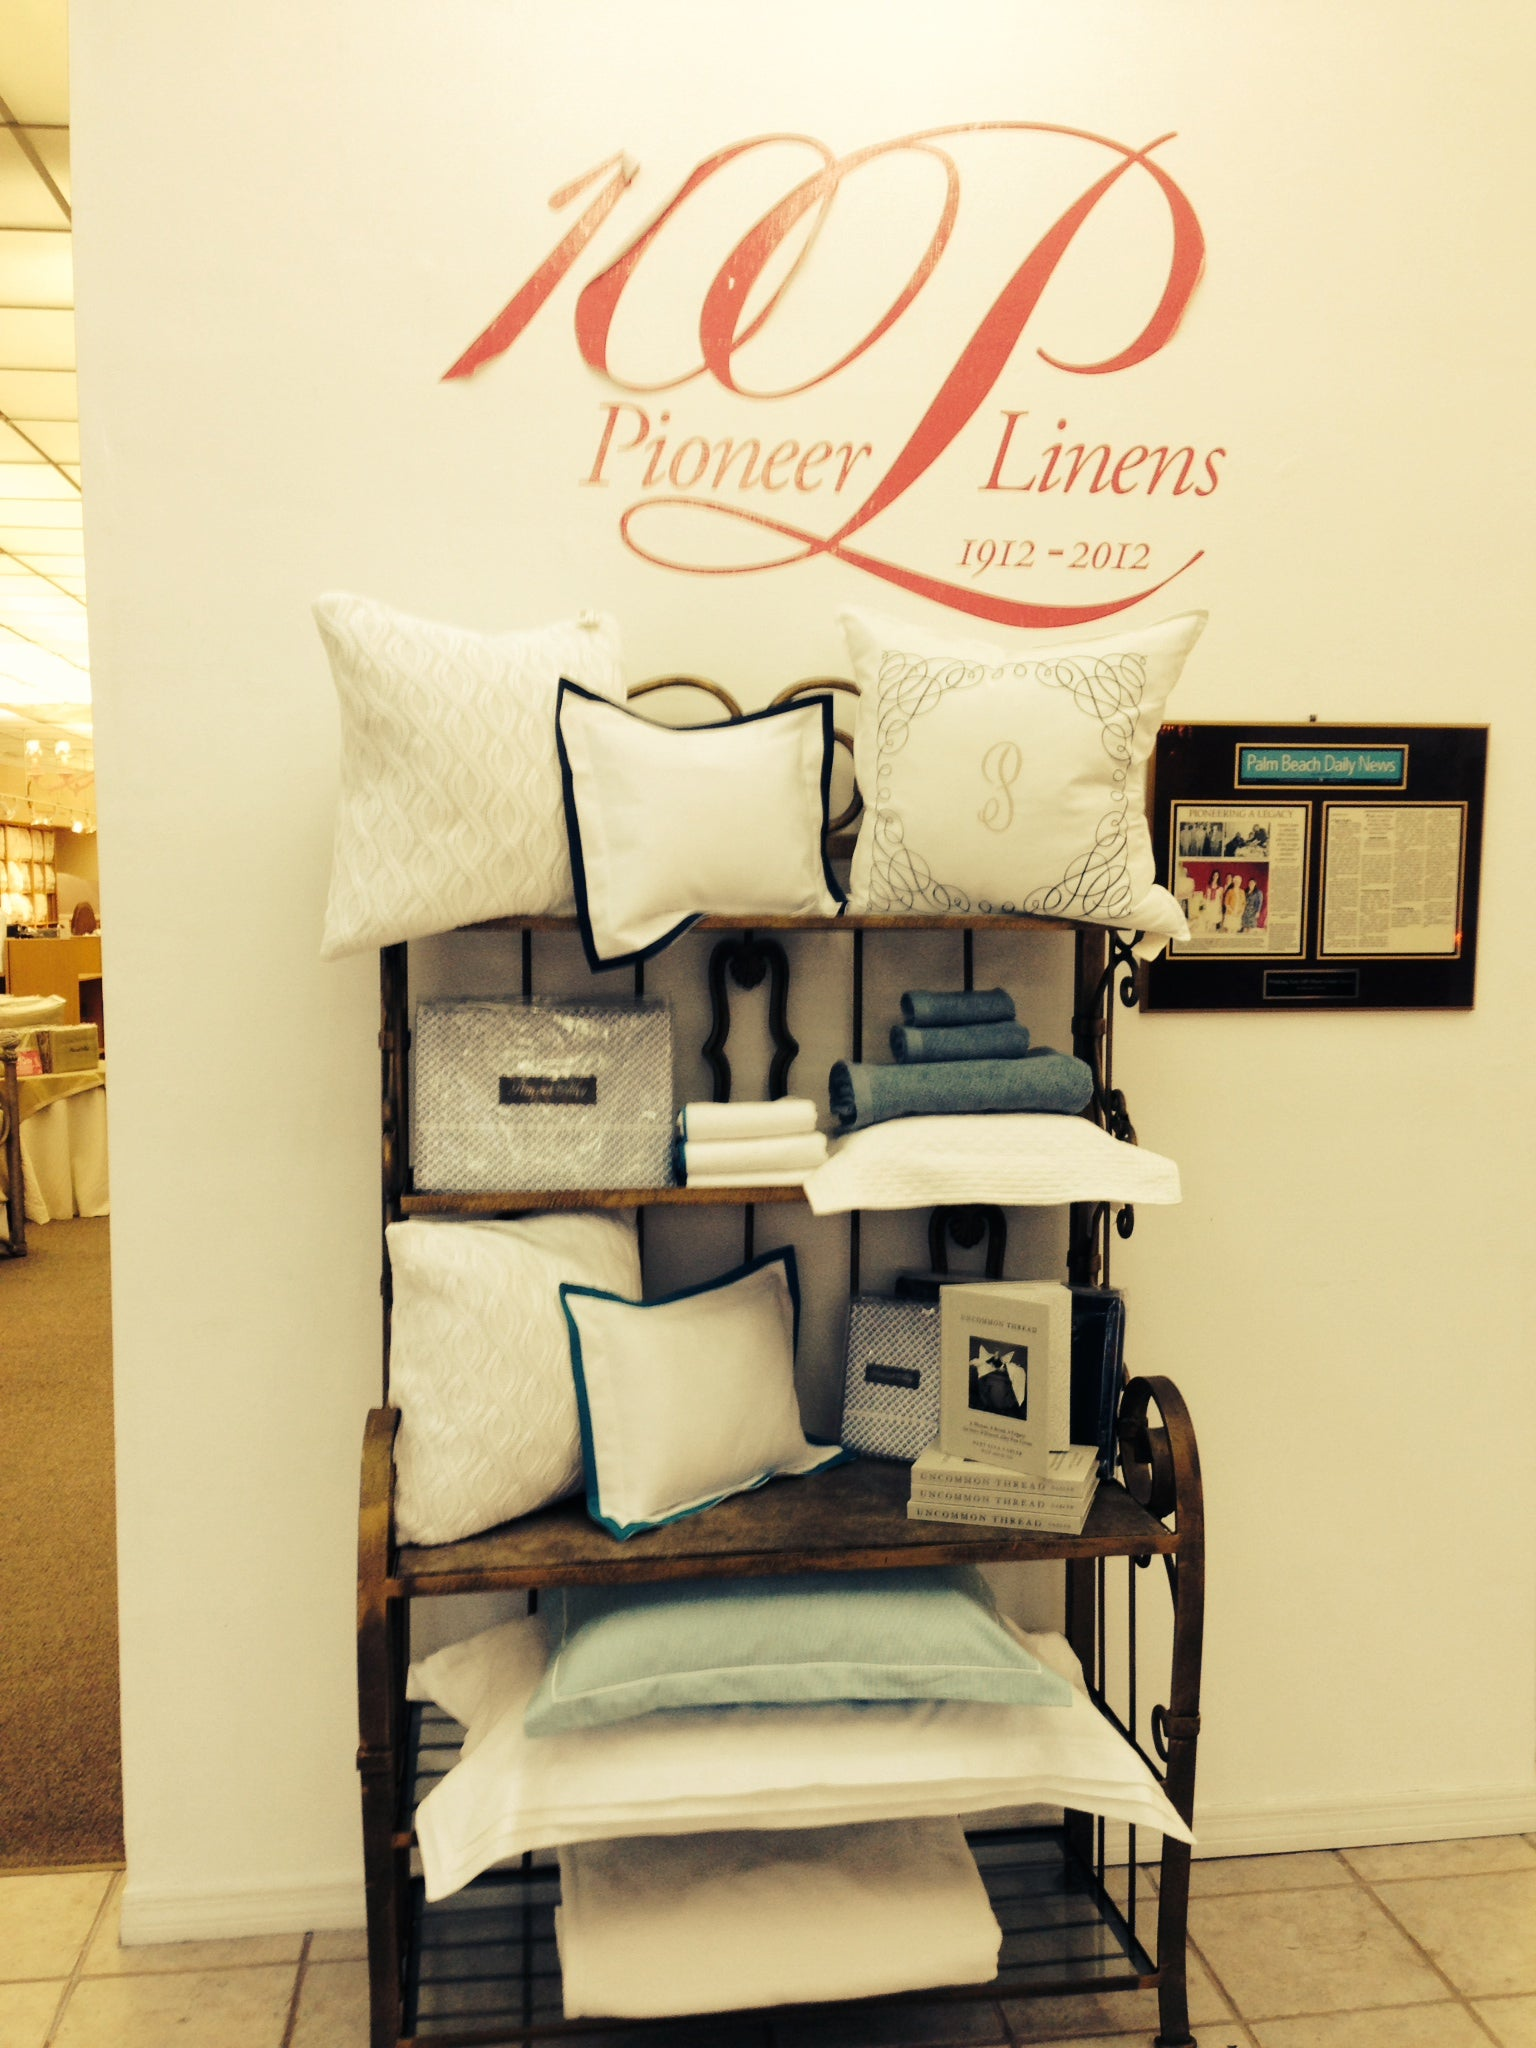 A display of pillows and other products sits at the entry way to Pioneer Linens